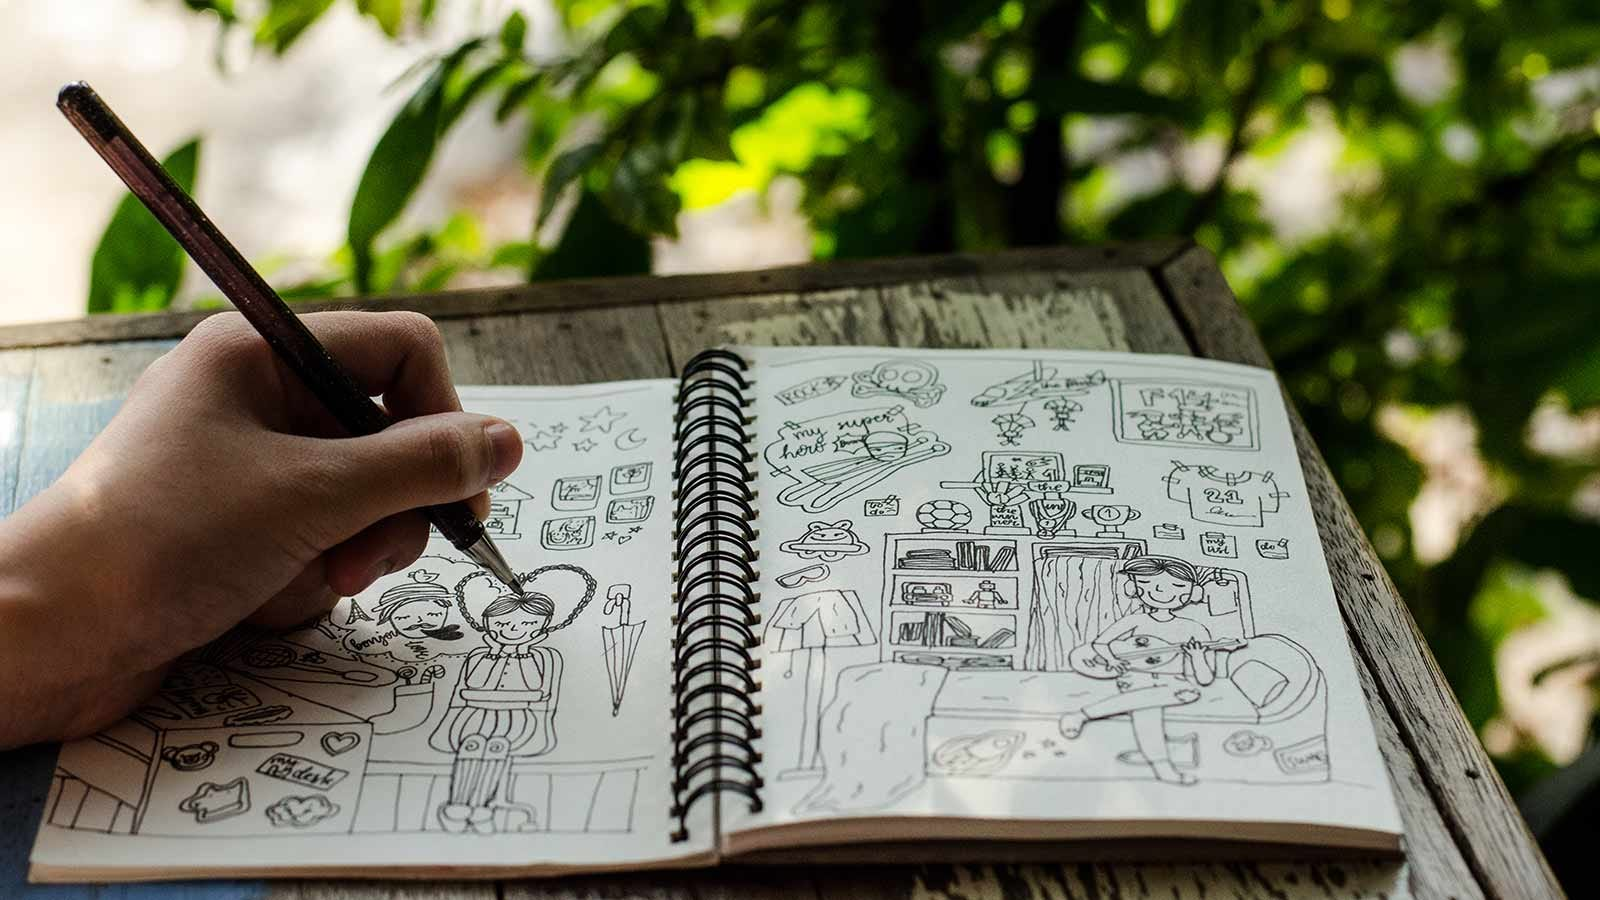 A hand drawing cartoons in a sketchbook.